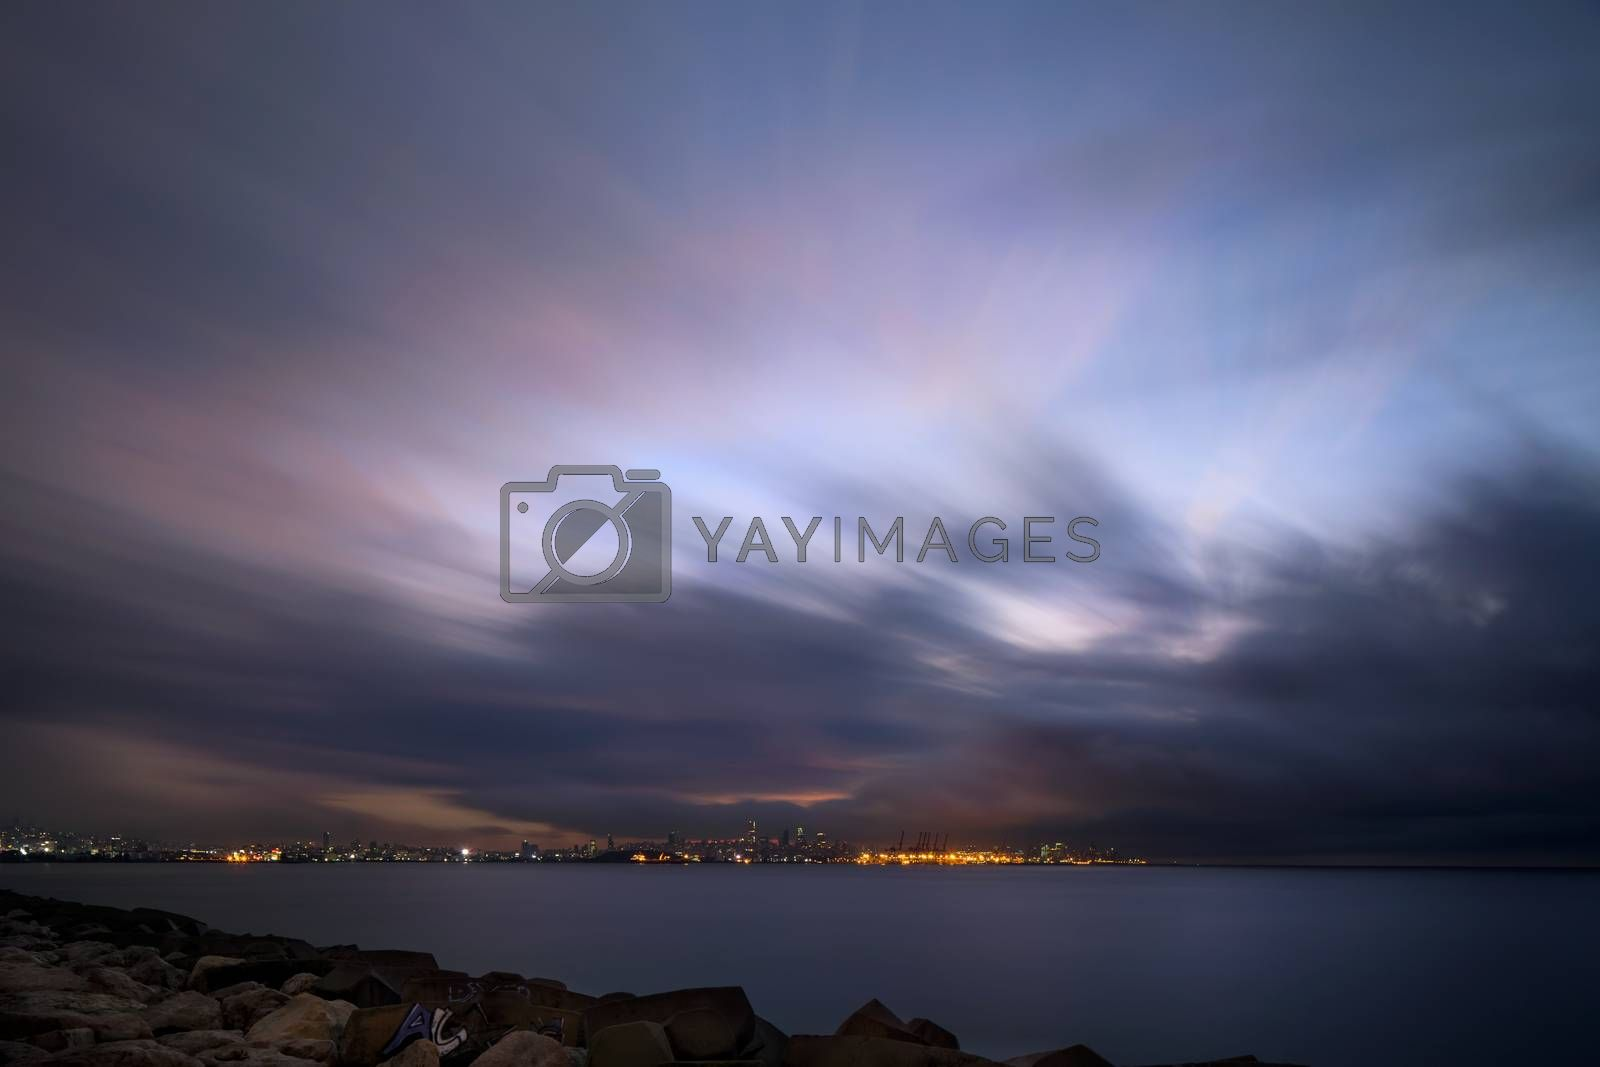 The Coastal Town is Visible in the Distance. Long Exposure of the Night Sky over the Mediterranean Sea. The Delightful Beauty of Lebanon.